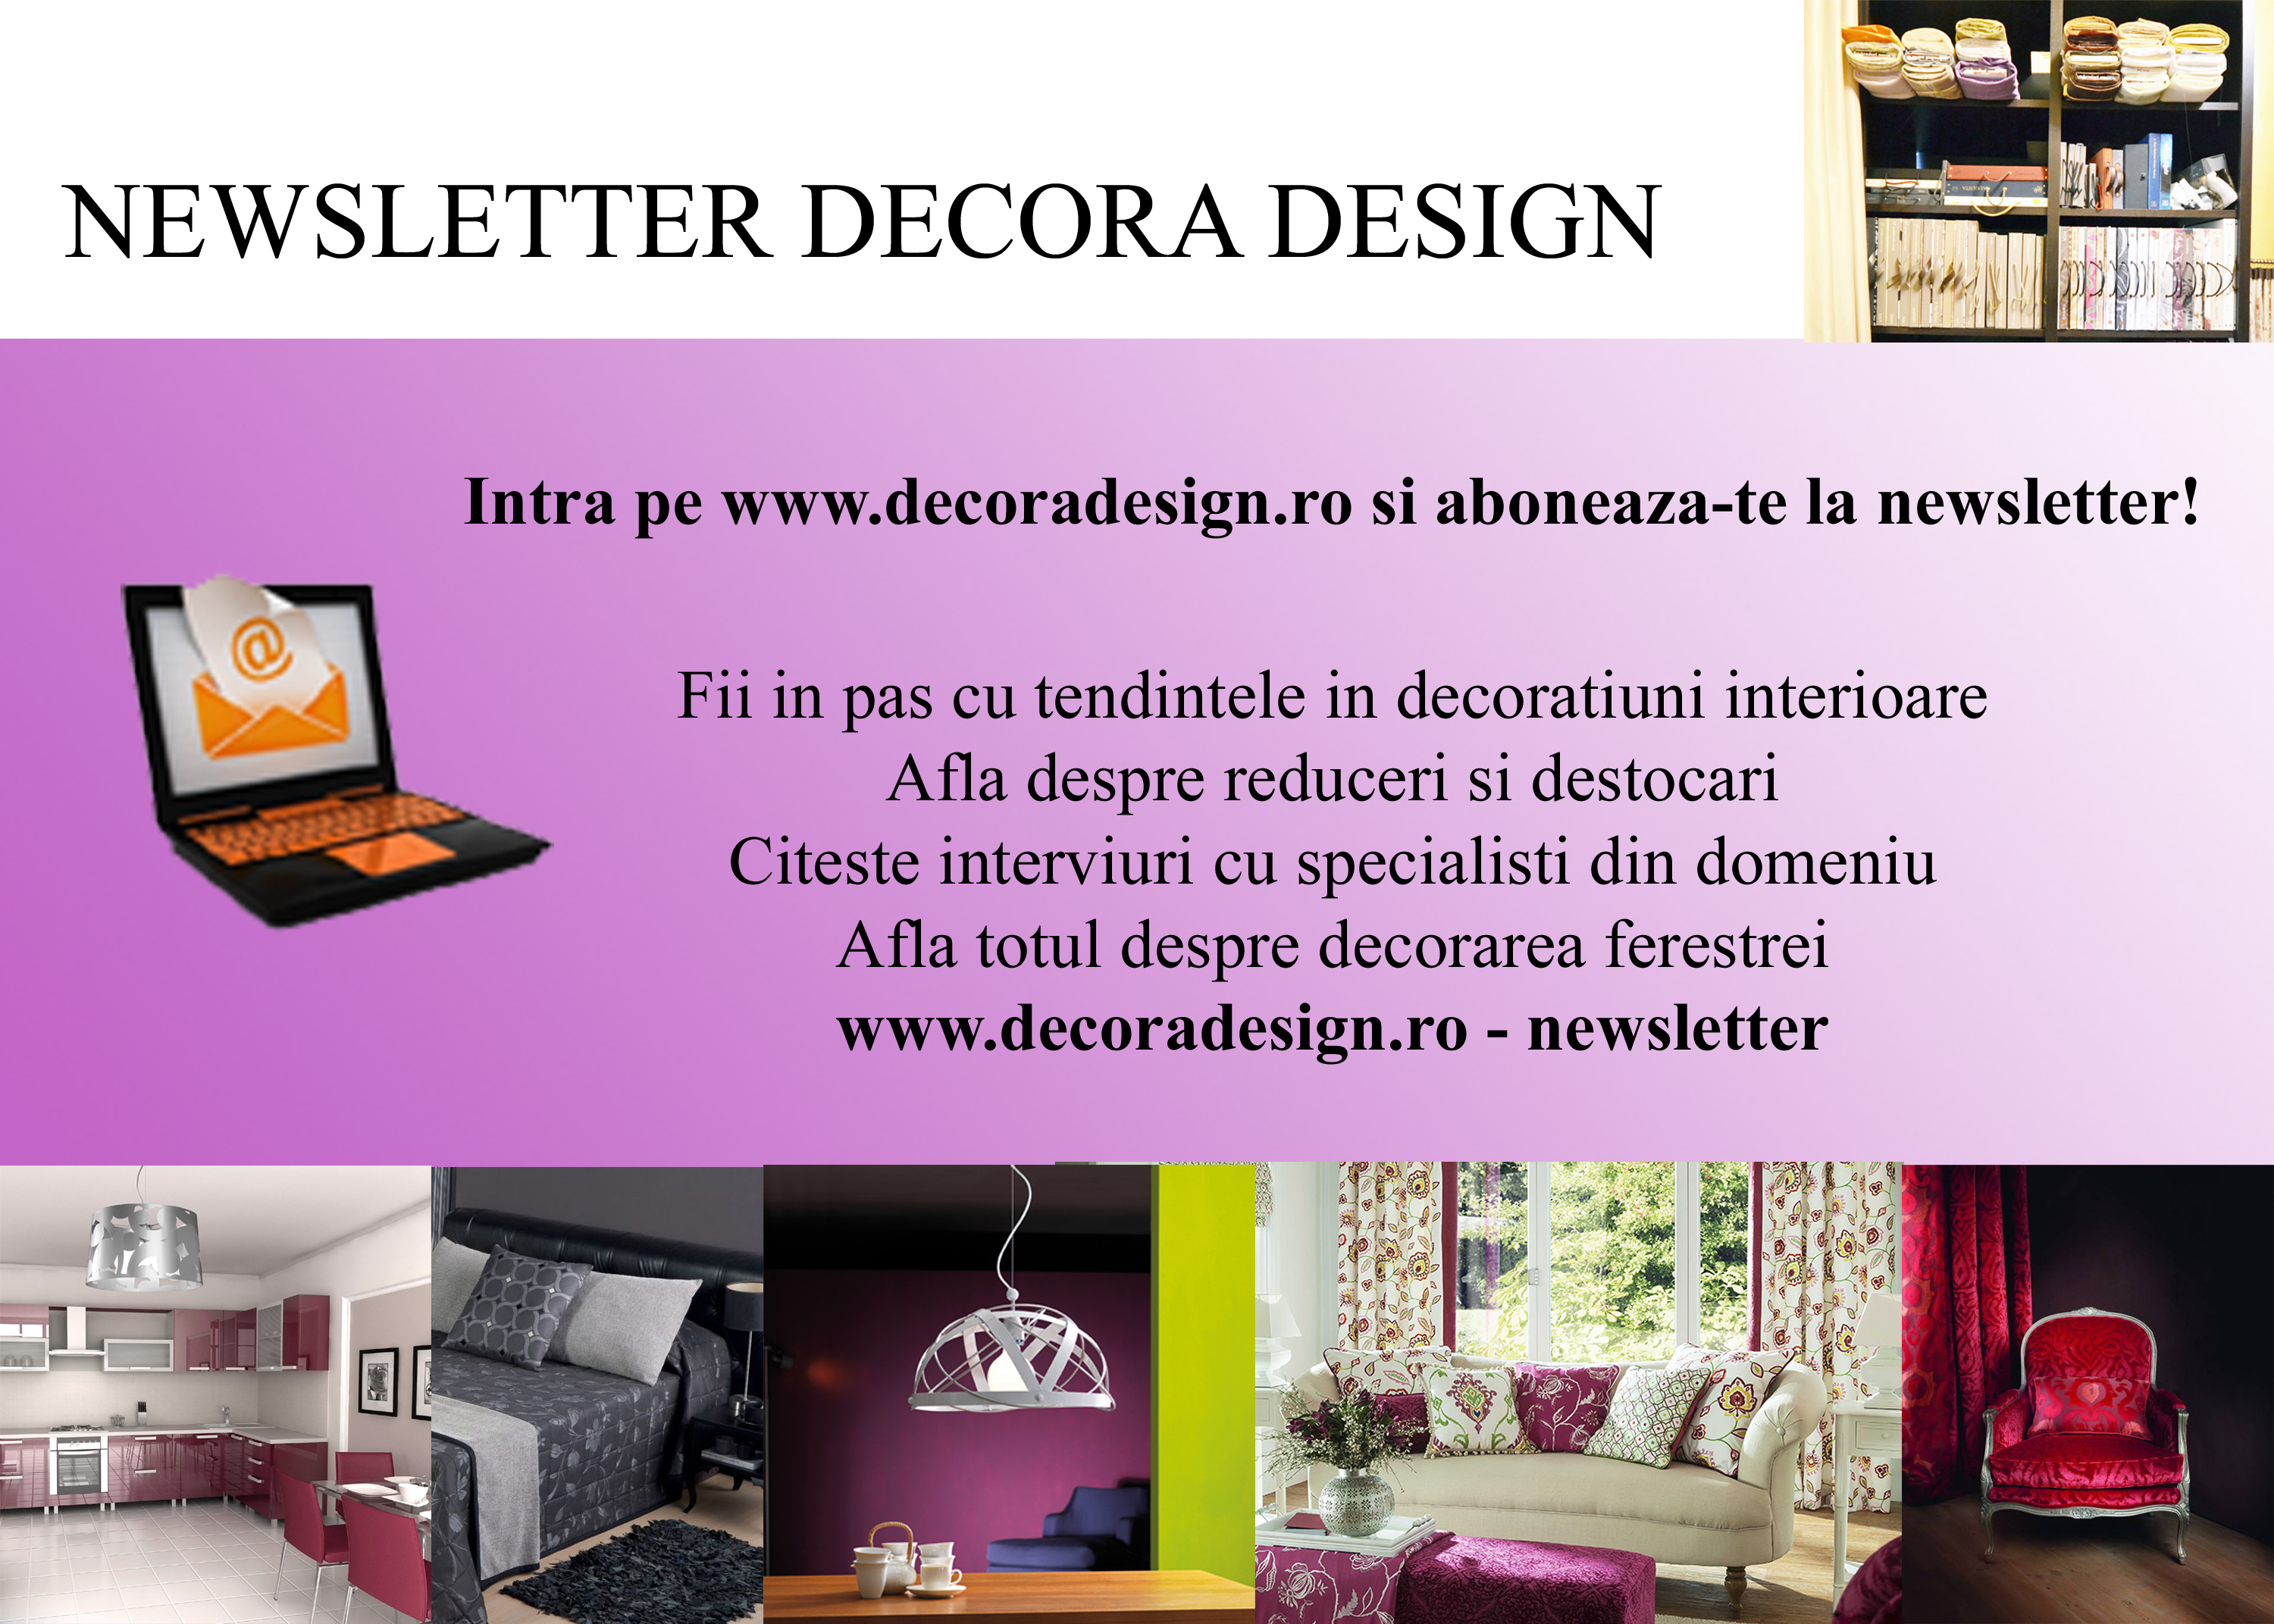 Aboneaza-te la newsletter-ul Decora Design